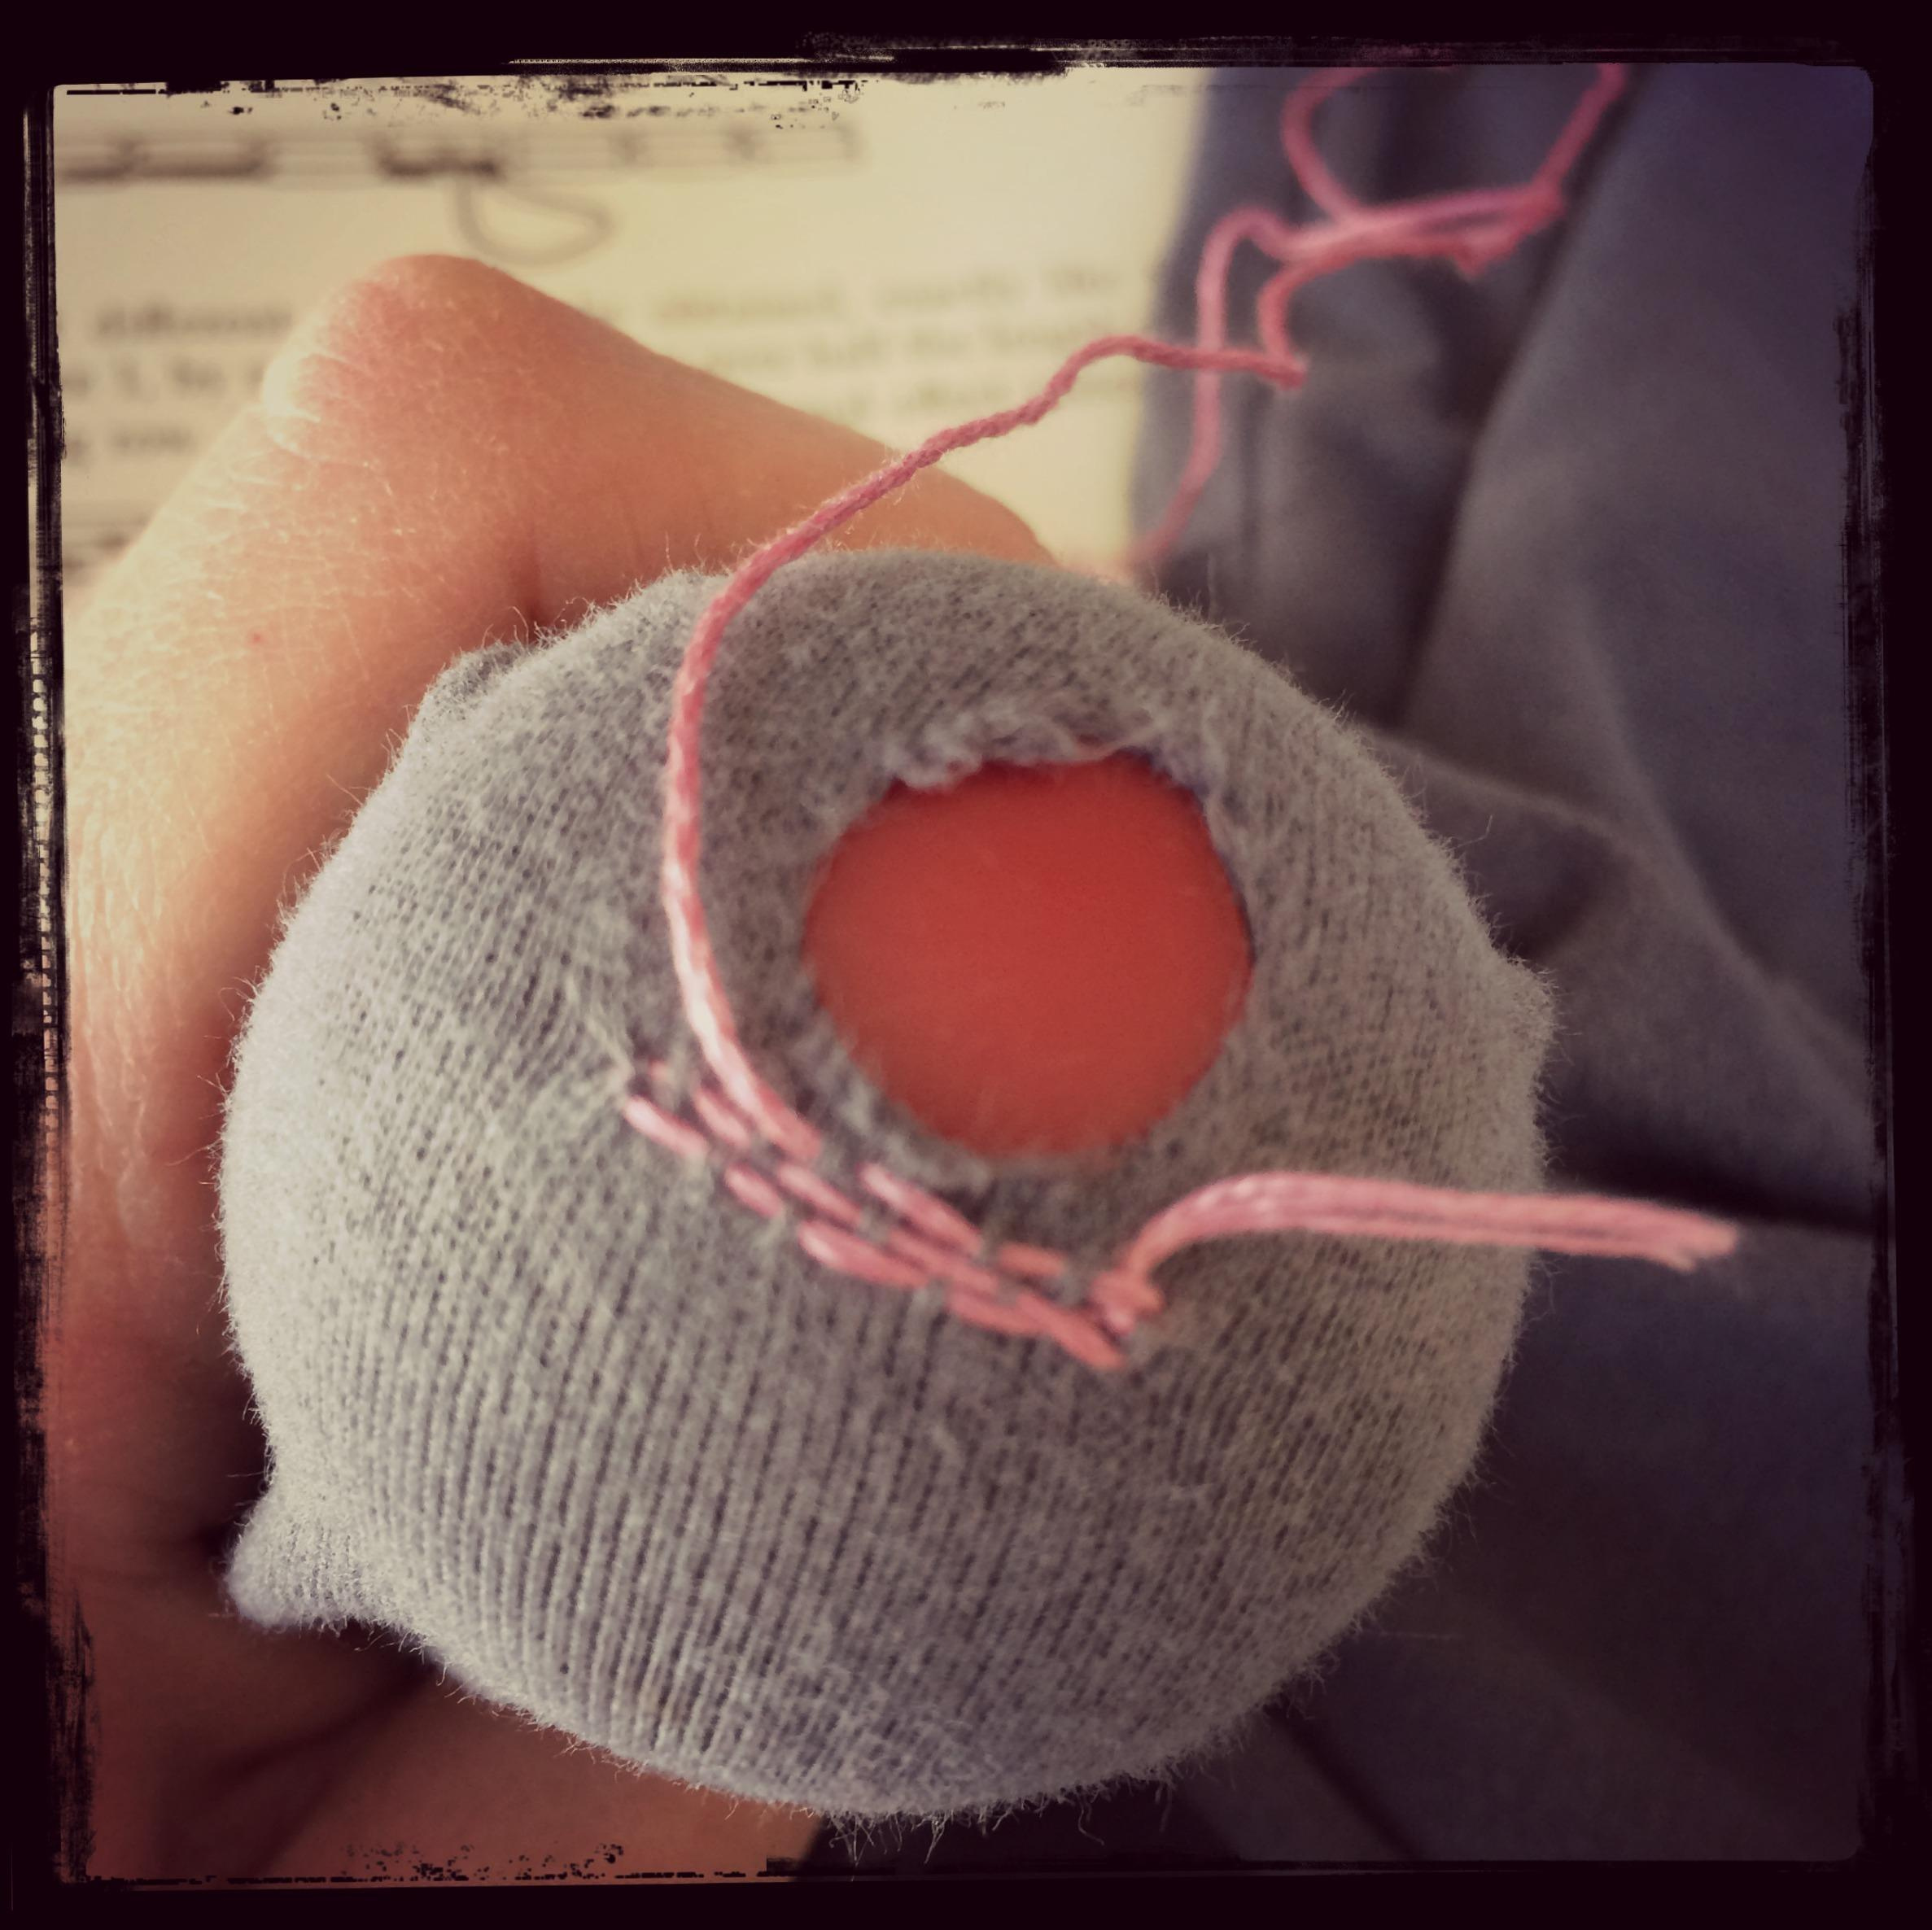 Darning Mark's Jumper: Wearing Love and Sorrow | Cultural ...